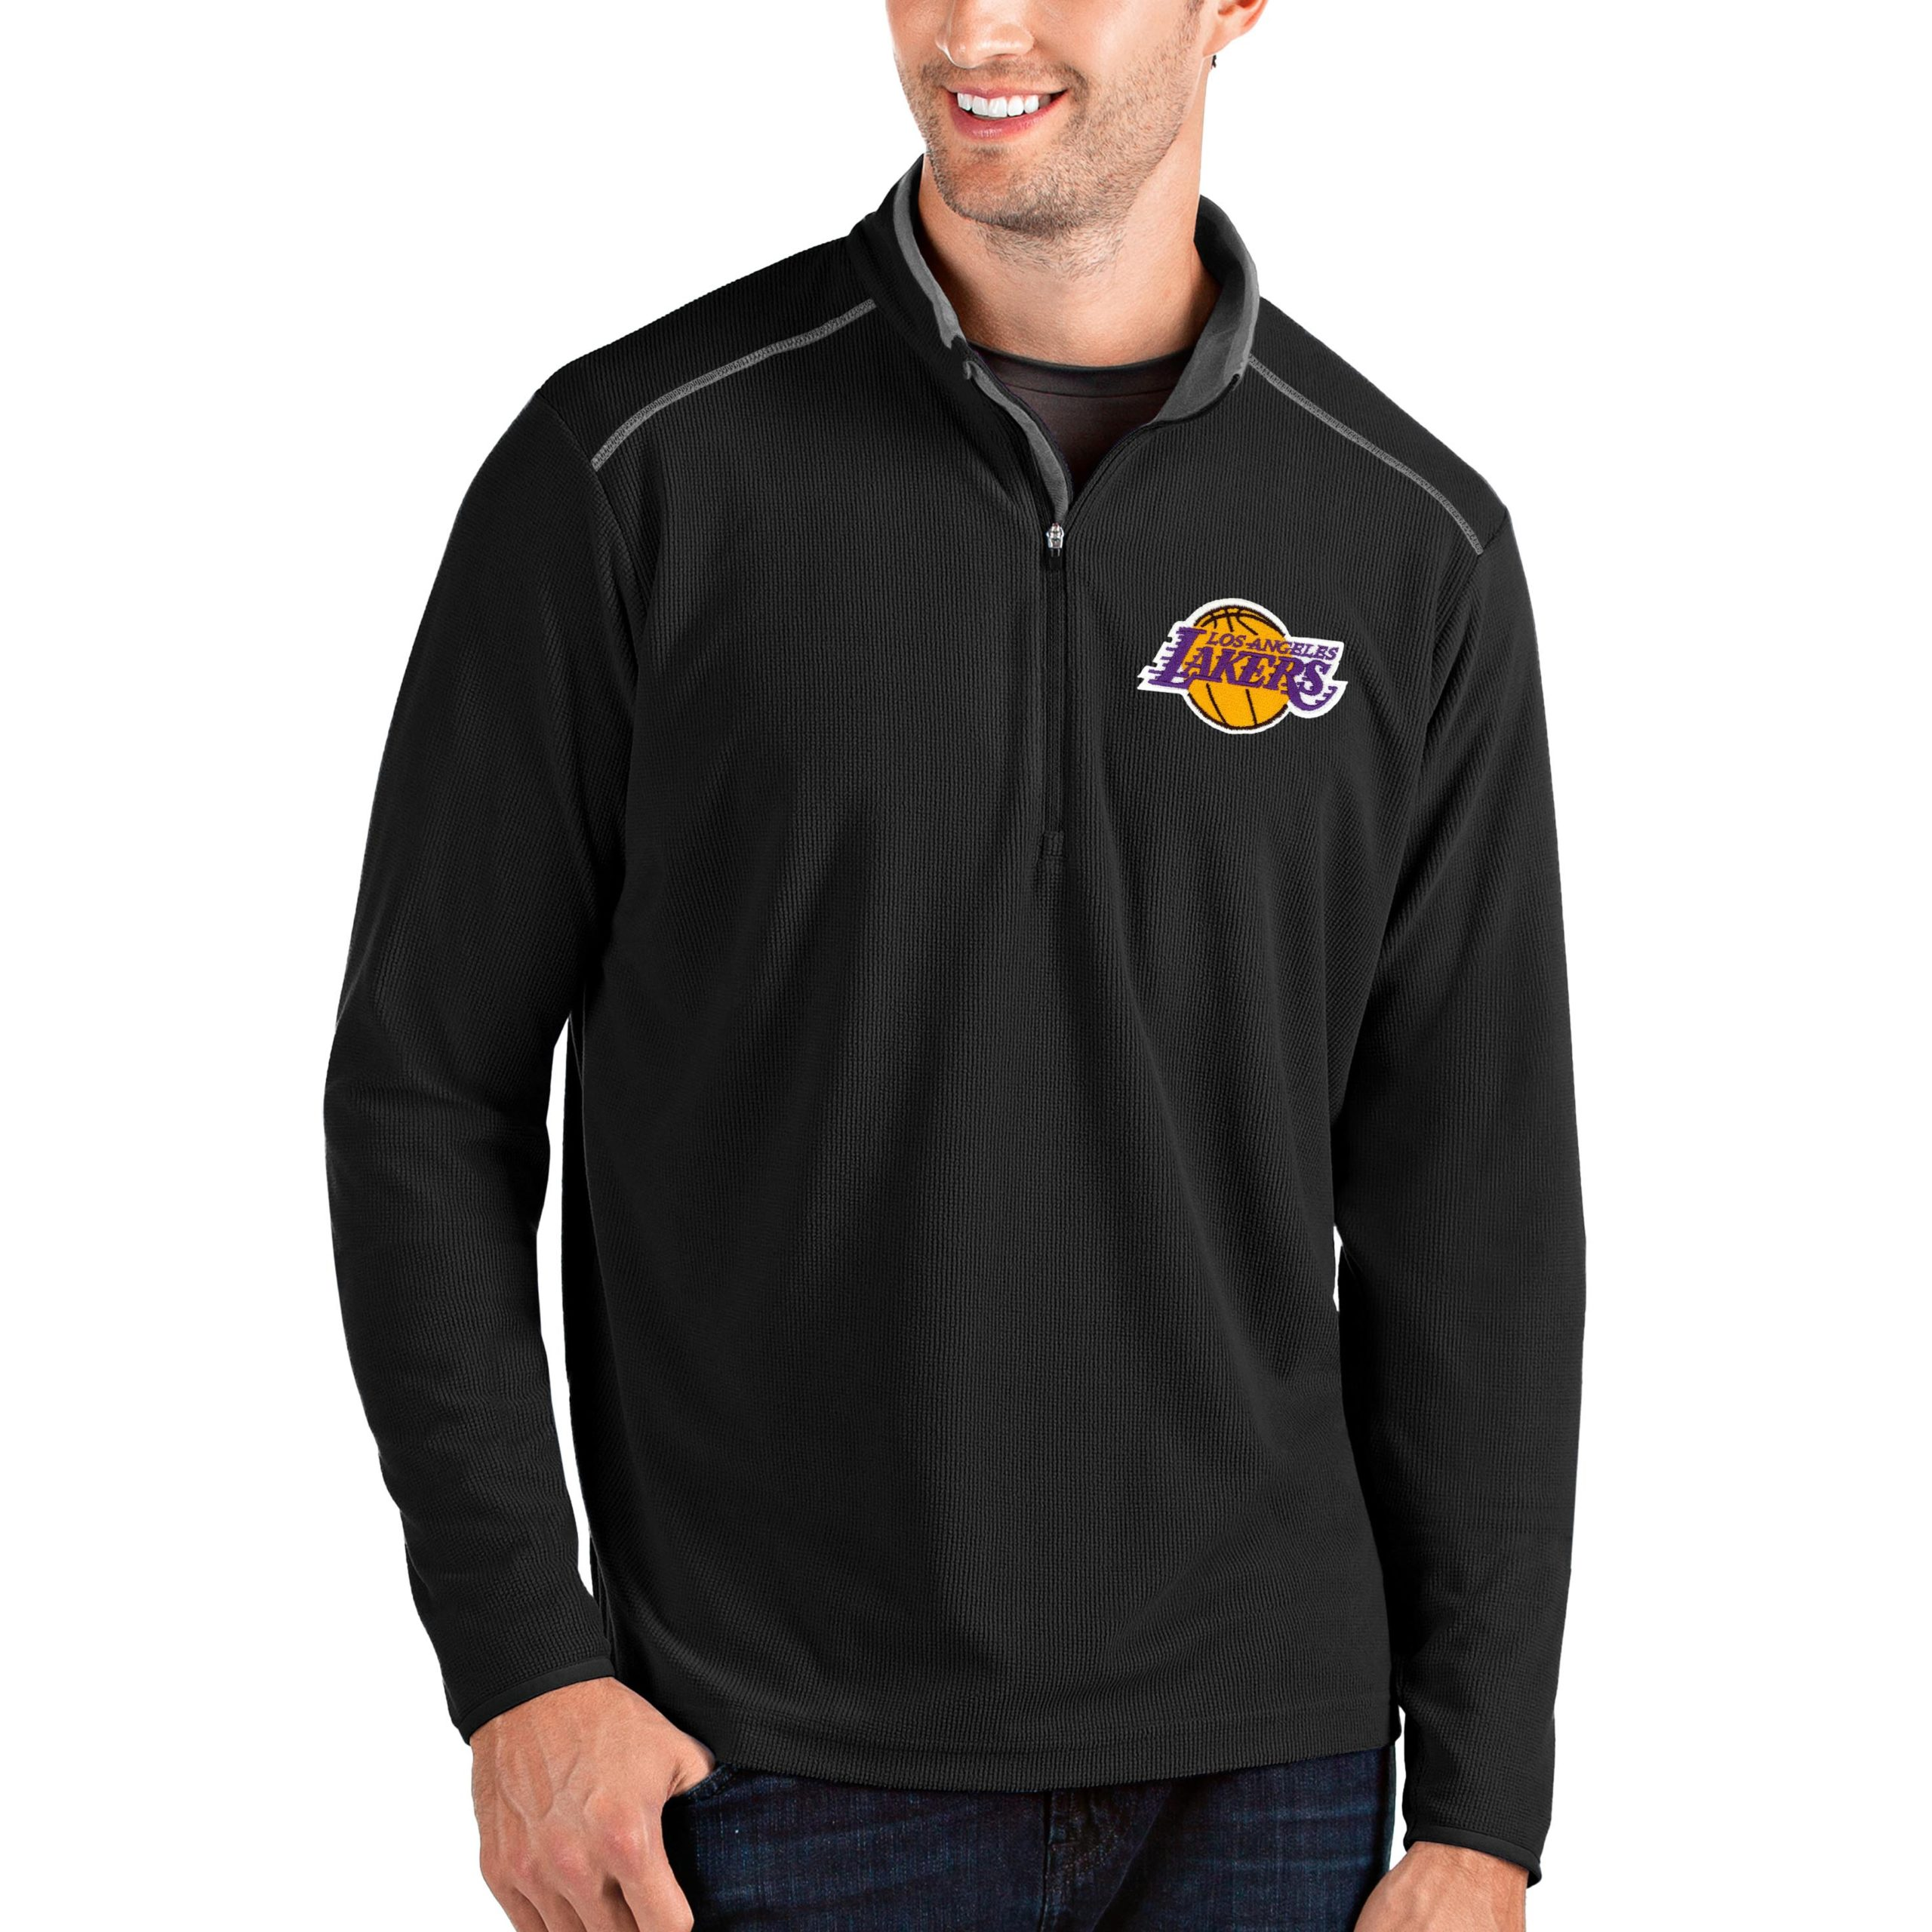 Los Angeles Lakers Antigua Big & Tall Glacier Quarter-Zip Pullover Jacket - Black/Gray